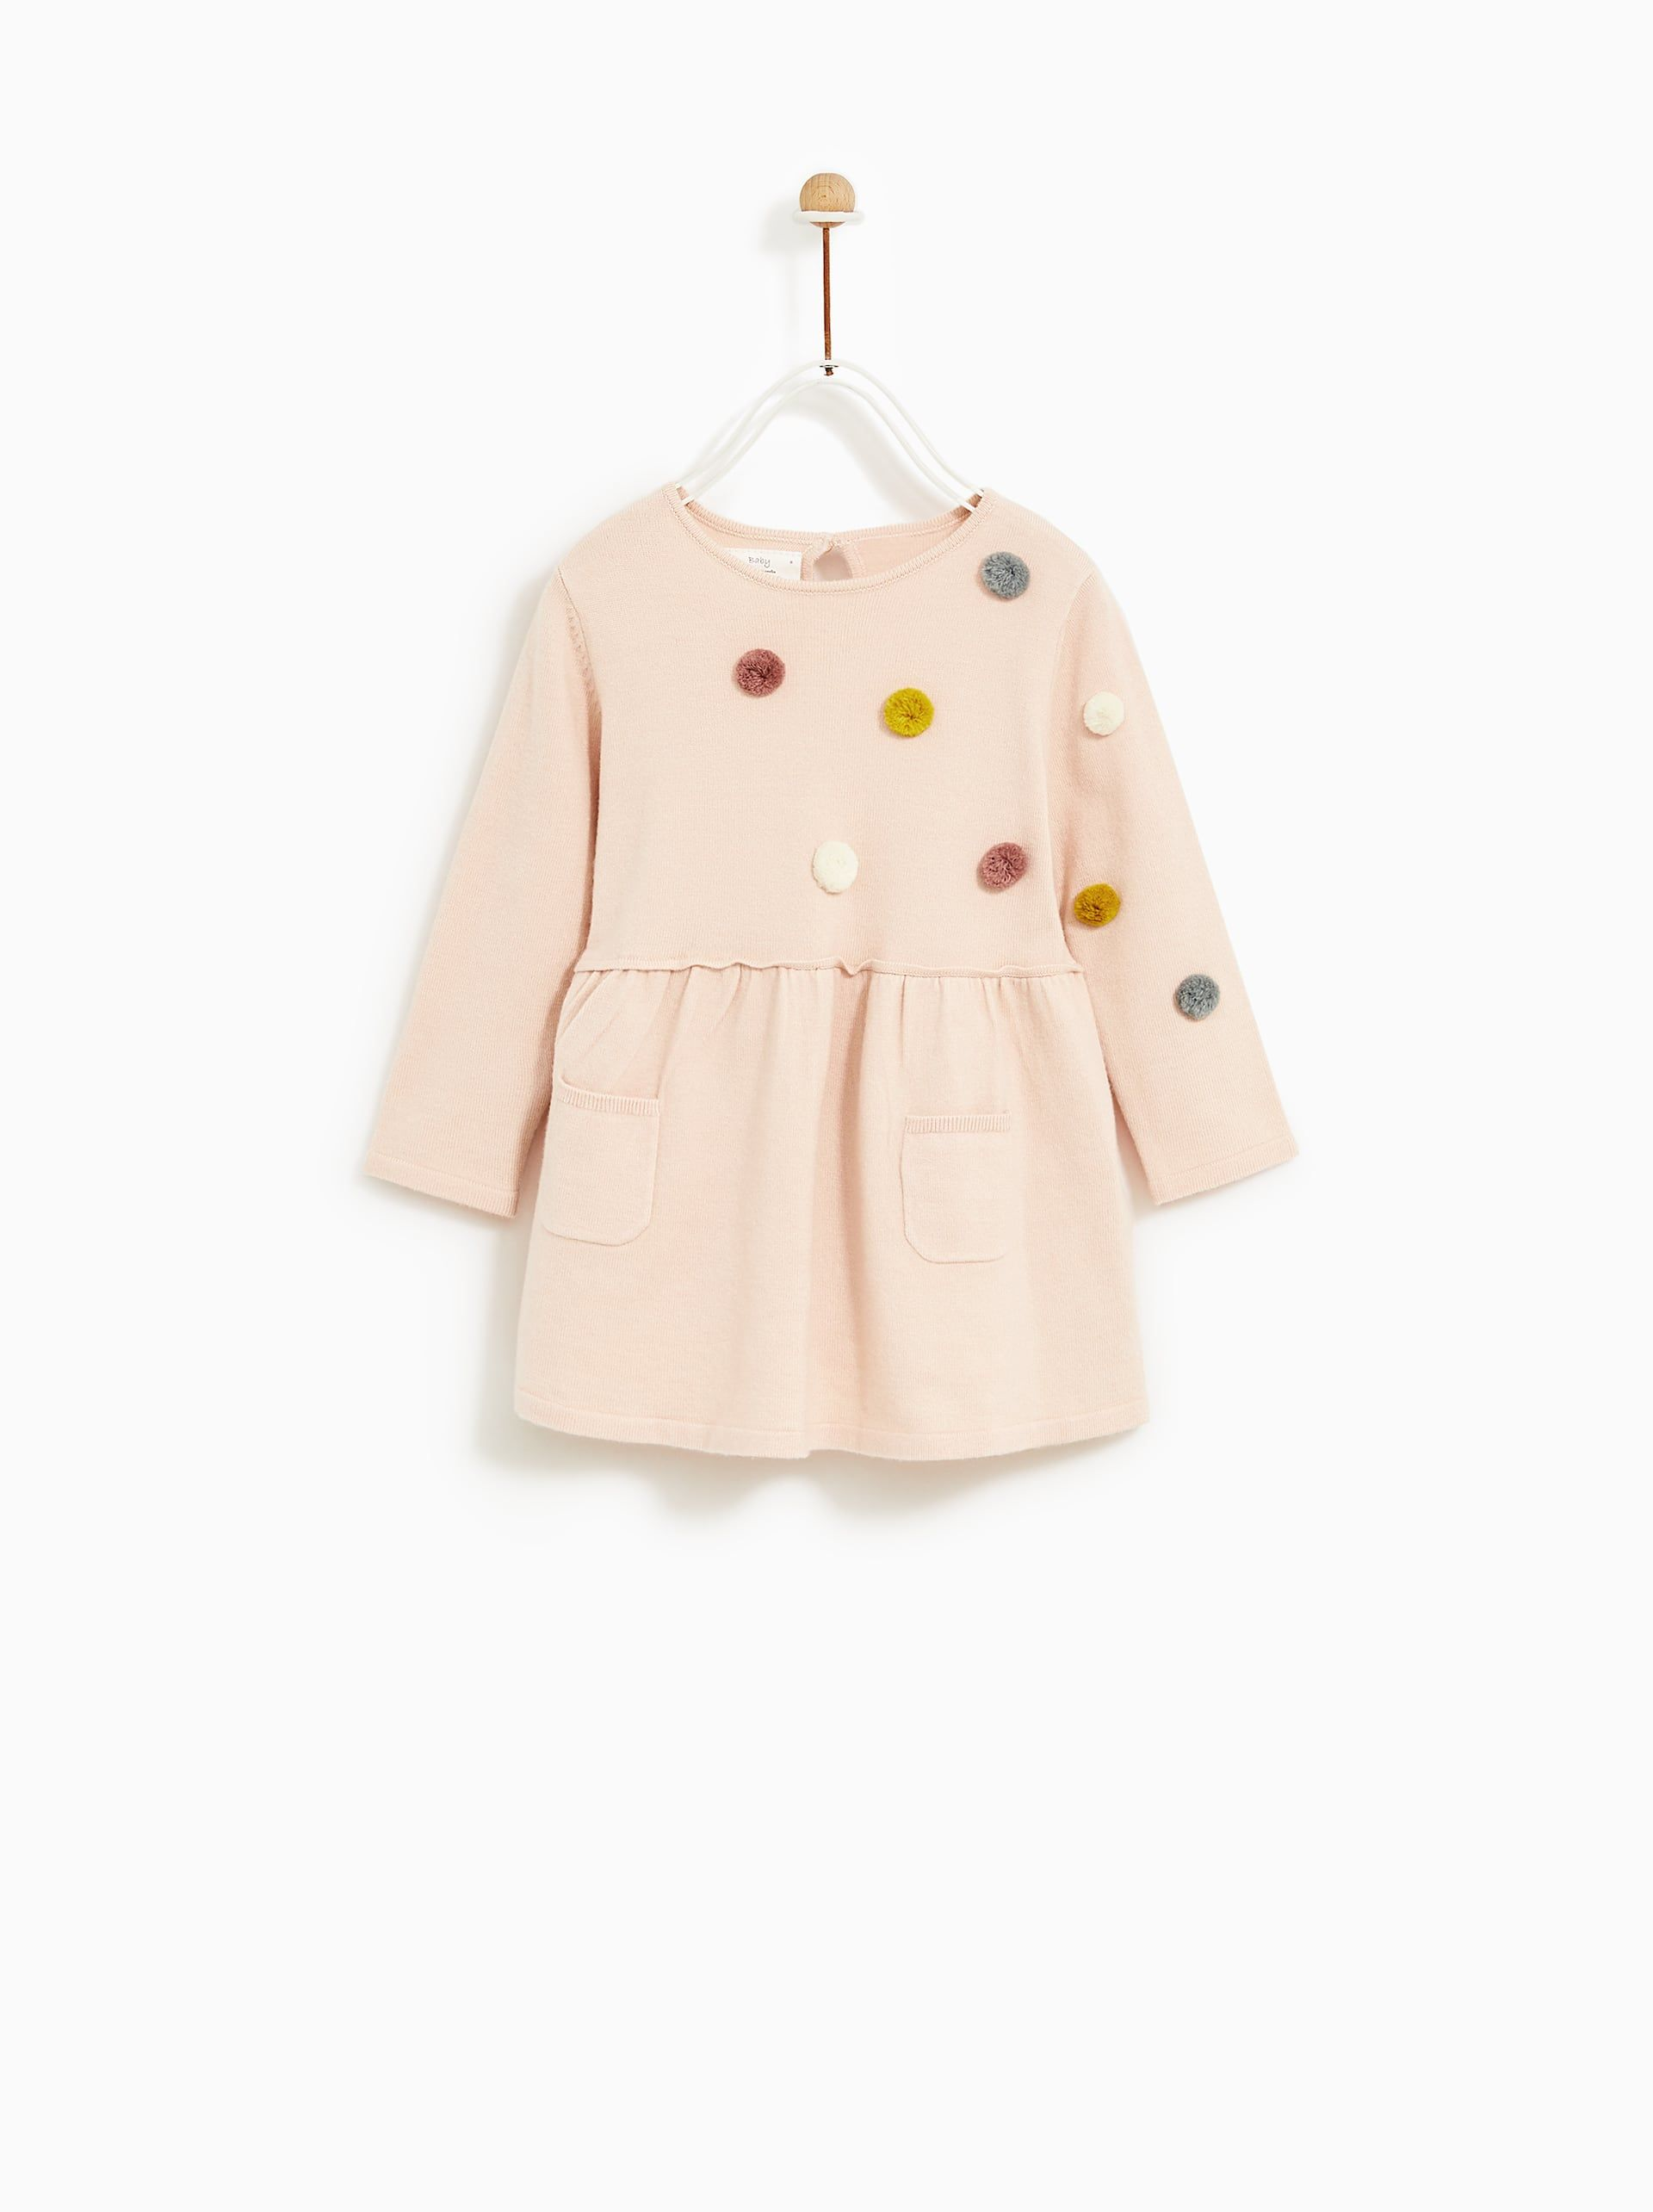 Multicolored Pompom Dress Toddler Designer Clothes Fall Baby Clothes Toddler Fashion